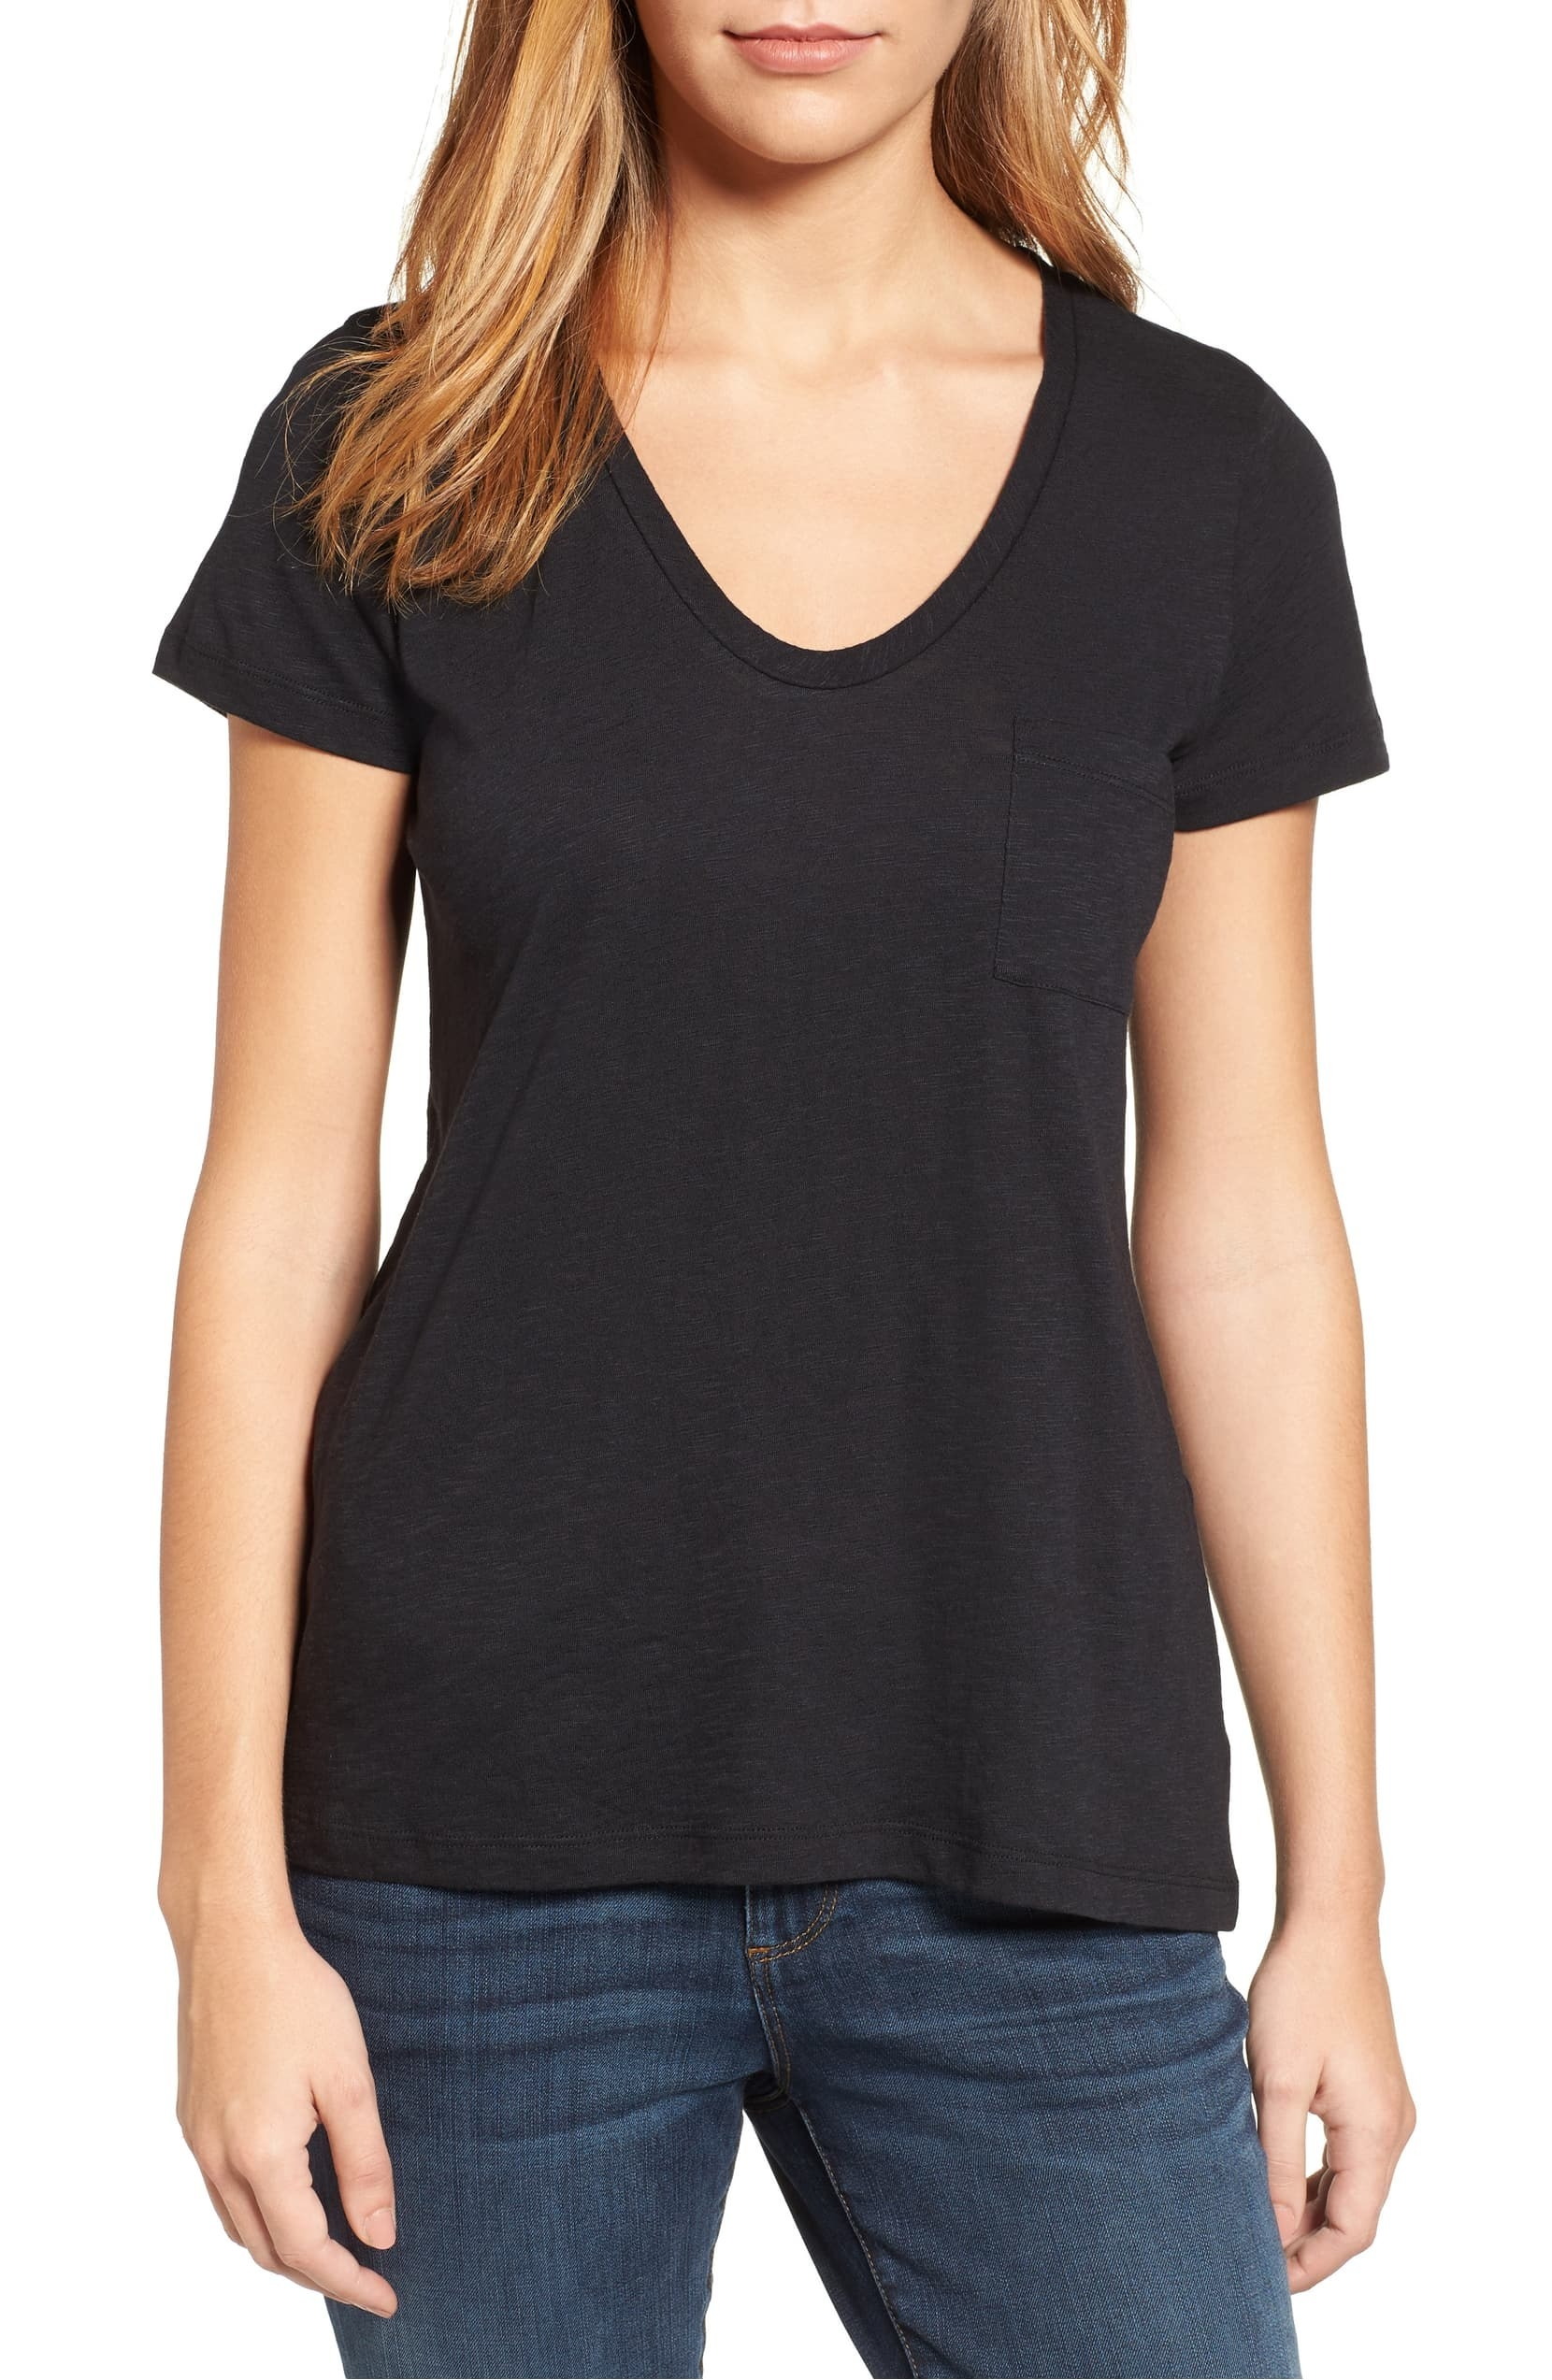 A model wearing the Caslon Rounded V-Neck T-Shirt.